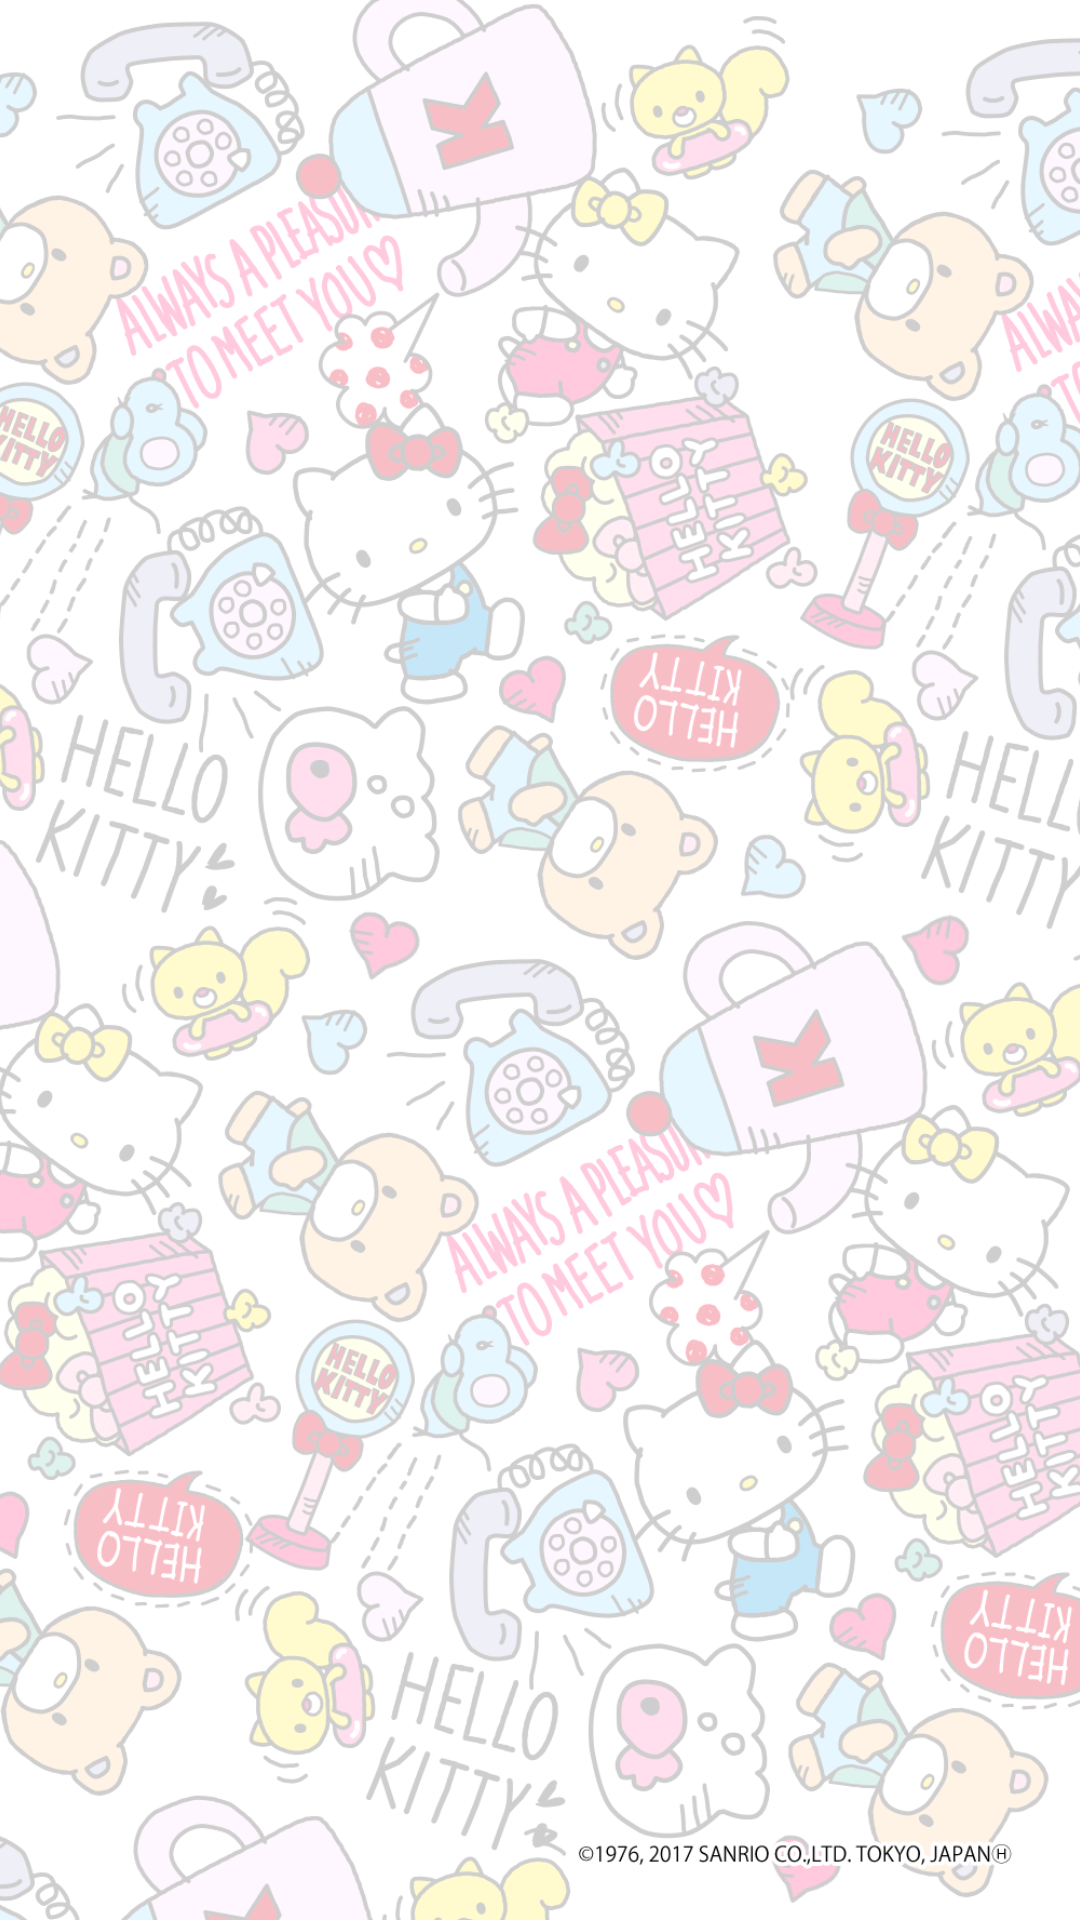 Sanrio Wallpapers From Homebuzz Launcher Please Don T Repost The